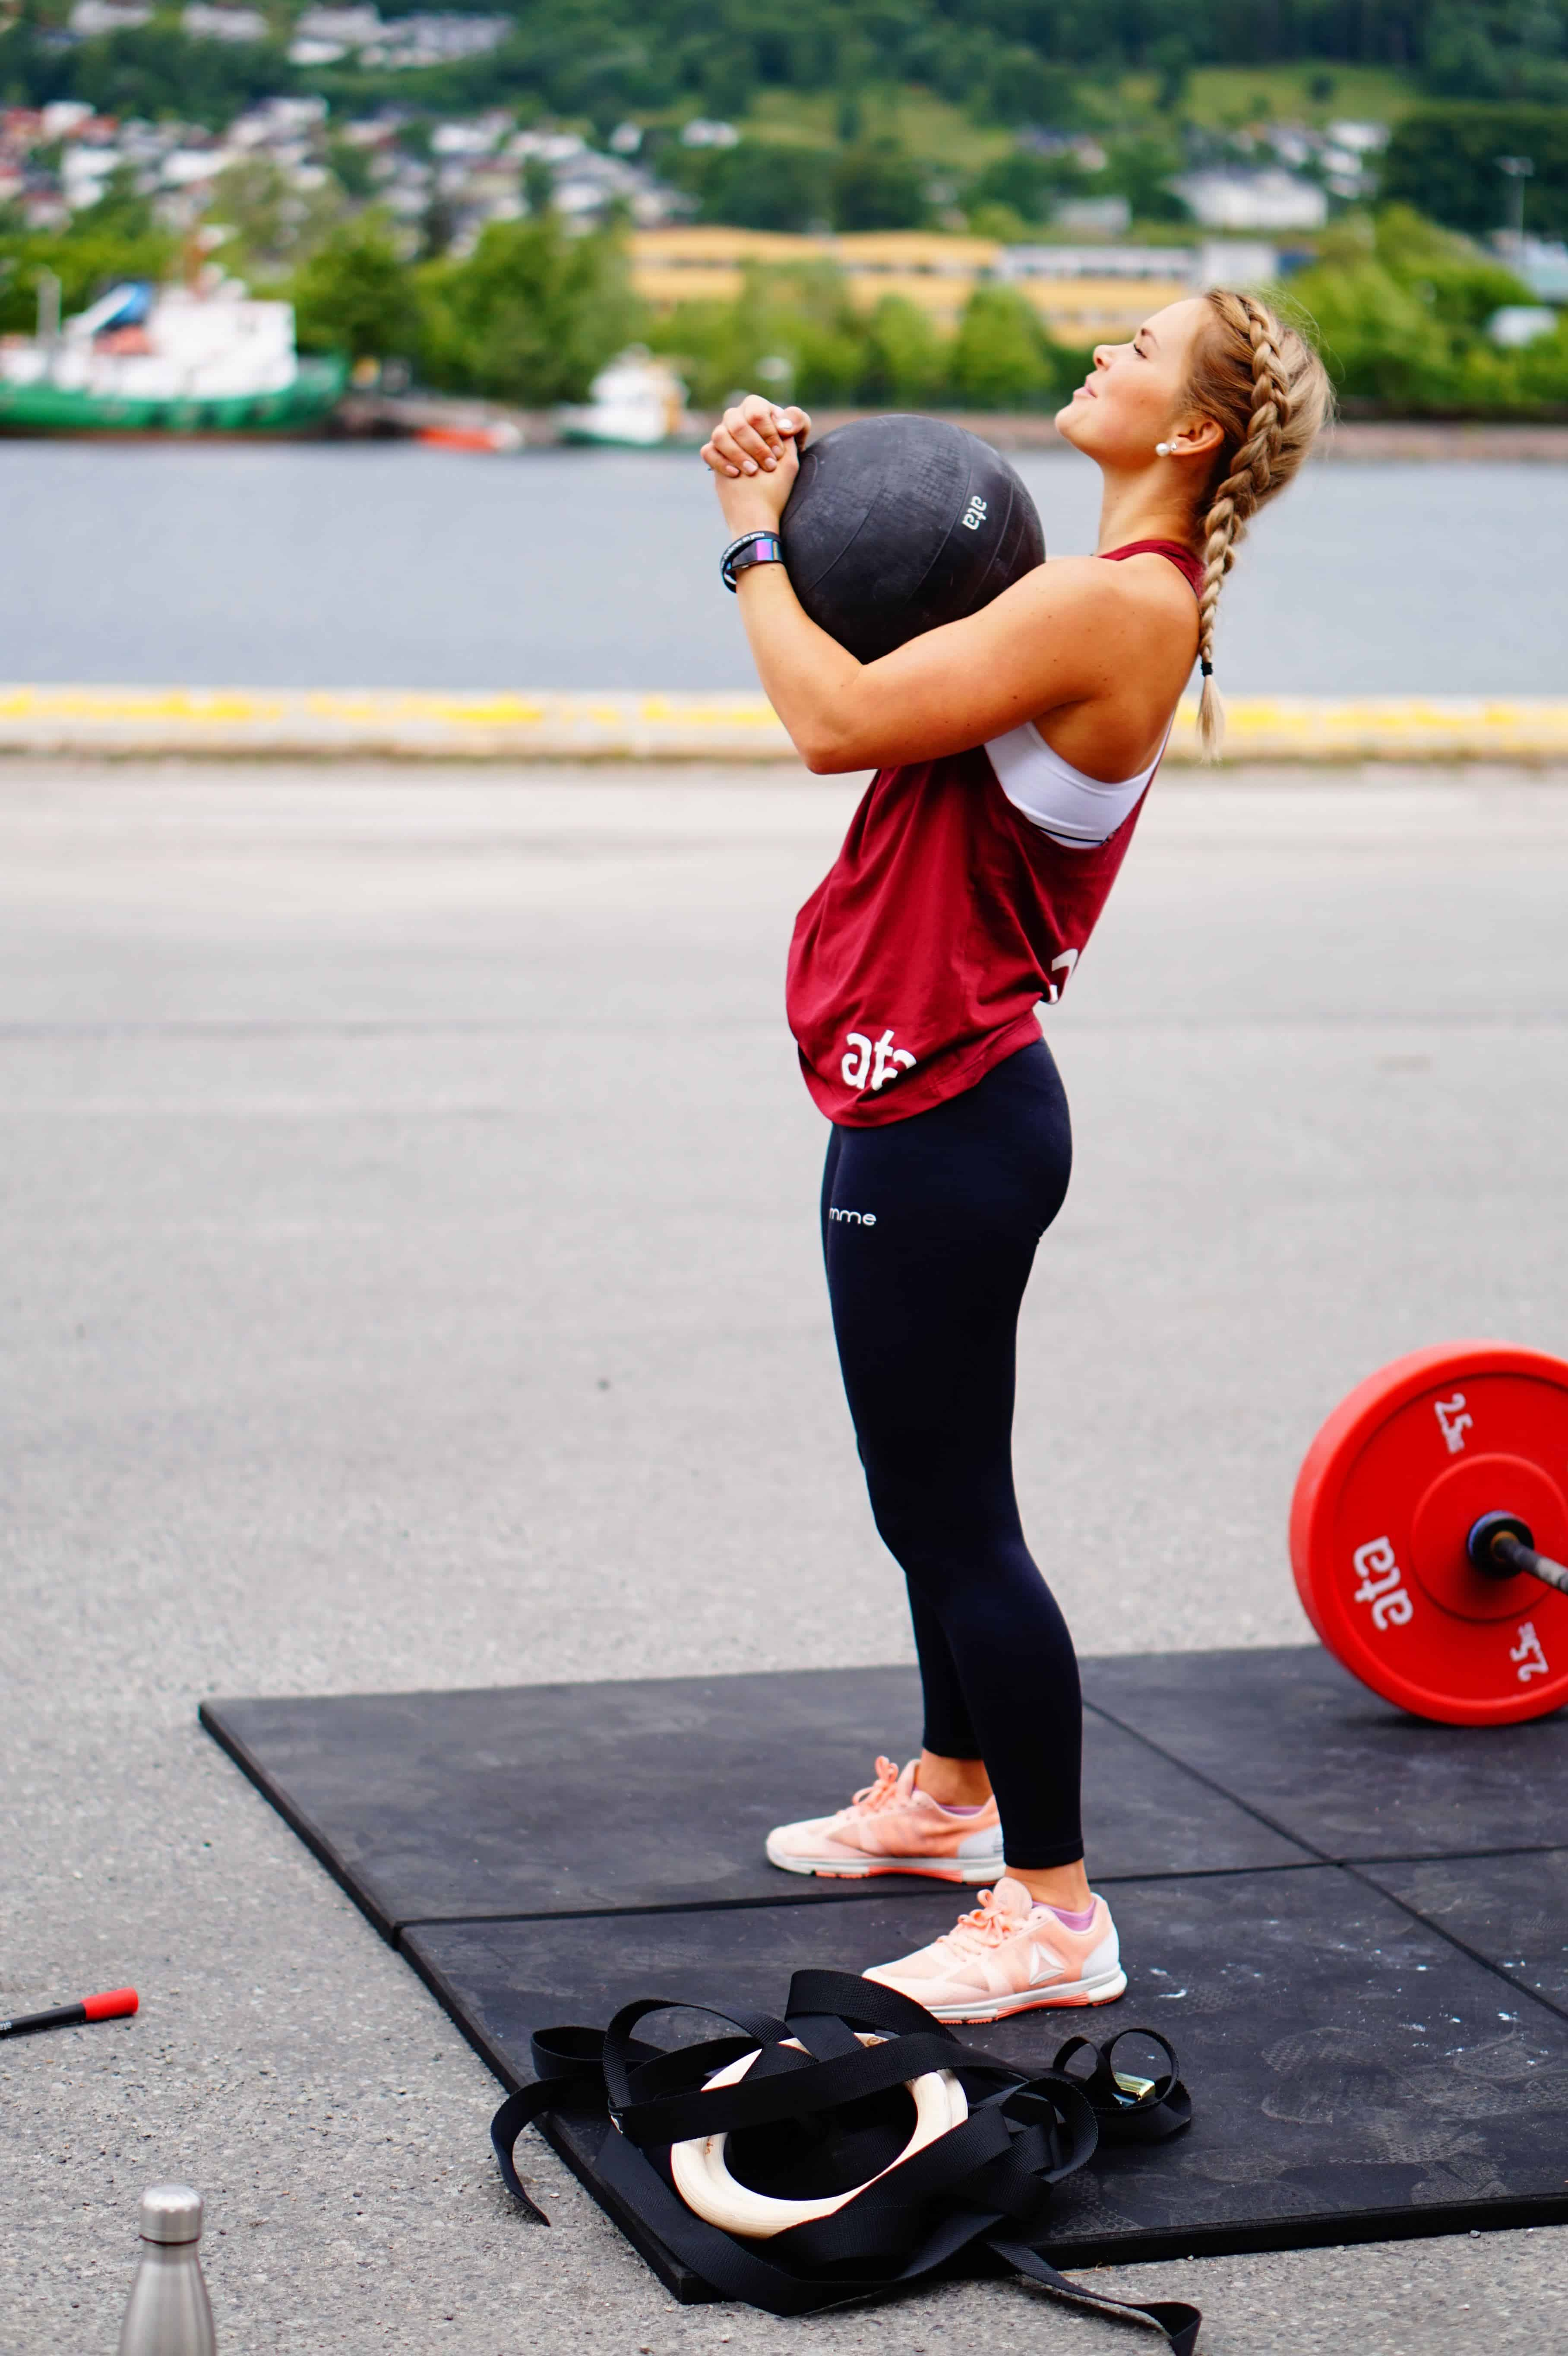 woman holding medicine ball outside on gym mat